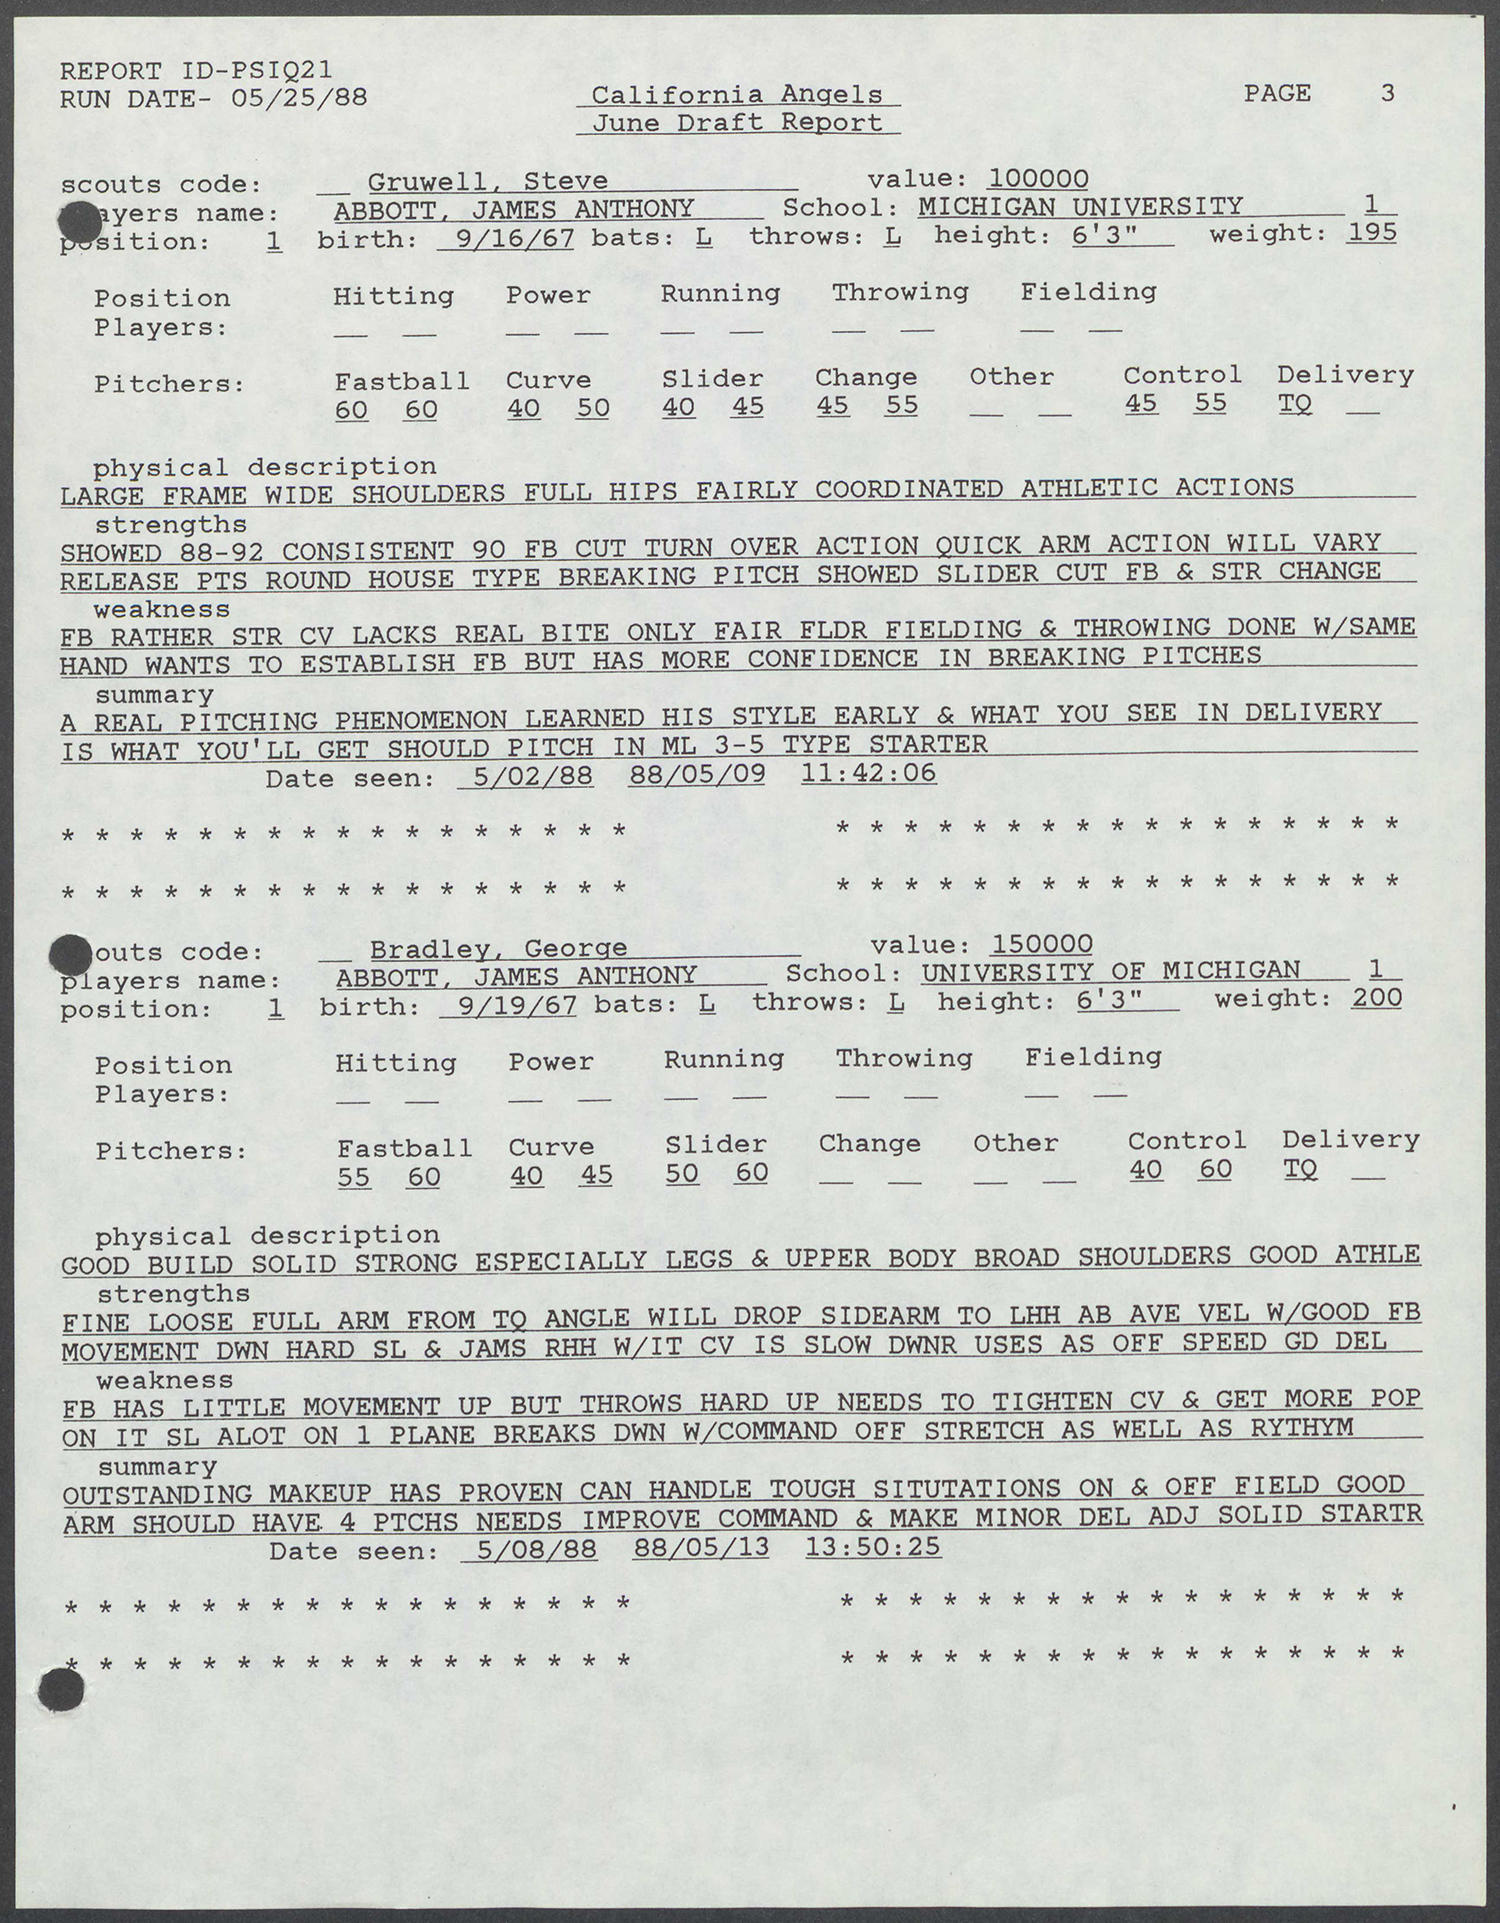 """Of the individual scouting reports of Jim Abbott conducted by Angels scouts Steve Gruwell and George Bradley, neither mention that Abbott lacks a right hand. <a href=""""https://collection.baseballhall.org/PASTIME/california-angels-scouting-reports-binder-1988-february-may#page/8/mode/1up"""">PASTIME</a> (National Baseball Hall of Fame and Museum)"""